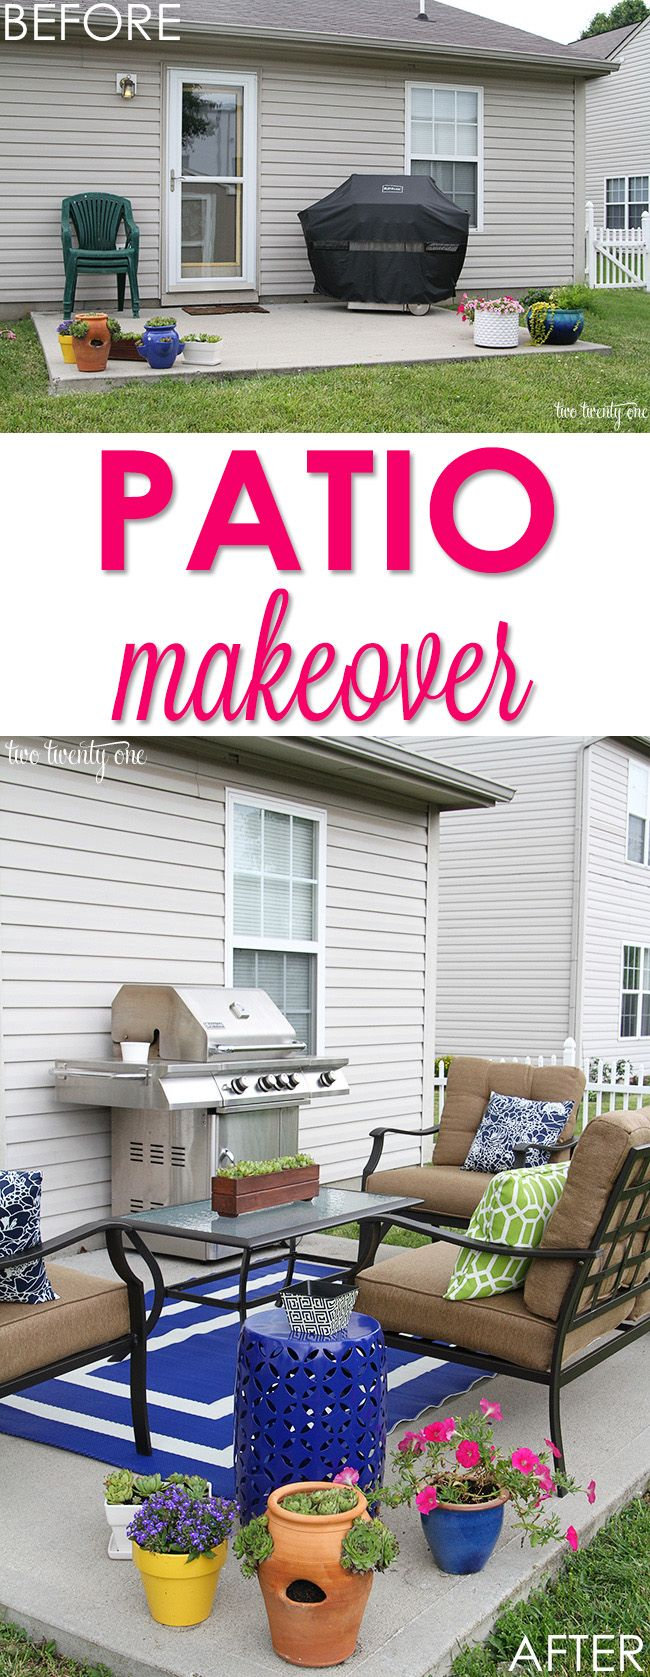 Maximize your small outdoor space to create a patio you'll love relaxing on!